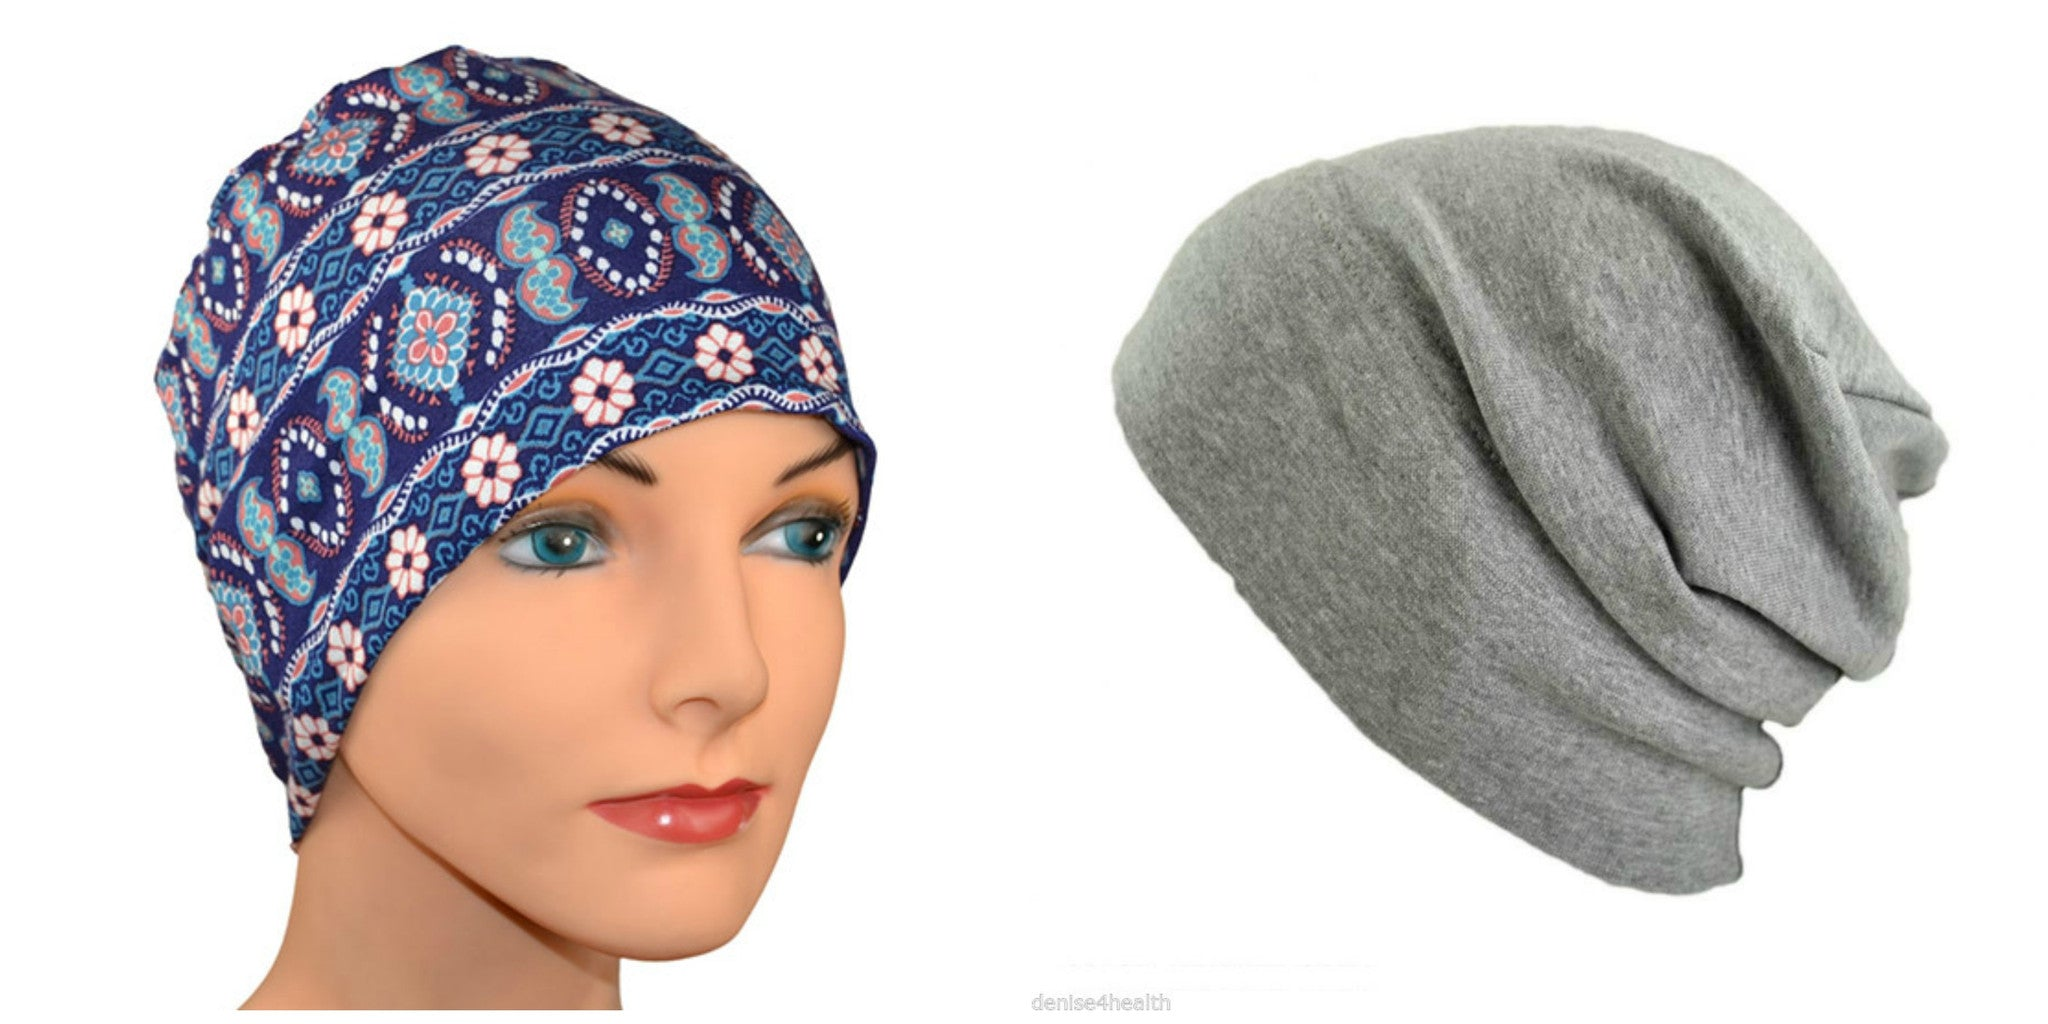 90a9d583139 2 hats ...Blue Print Organic Bamboo Sleep   Lounge and Gray Heather ...